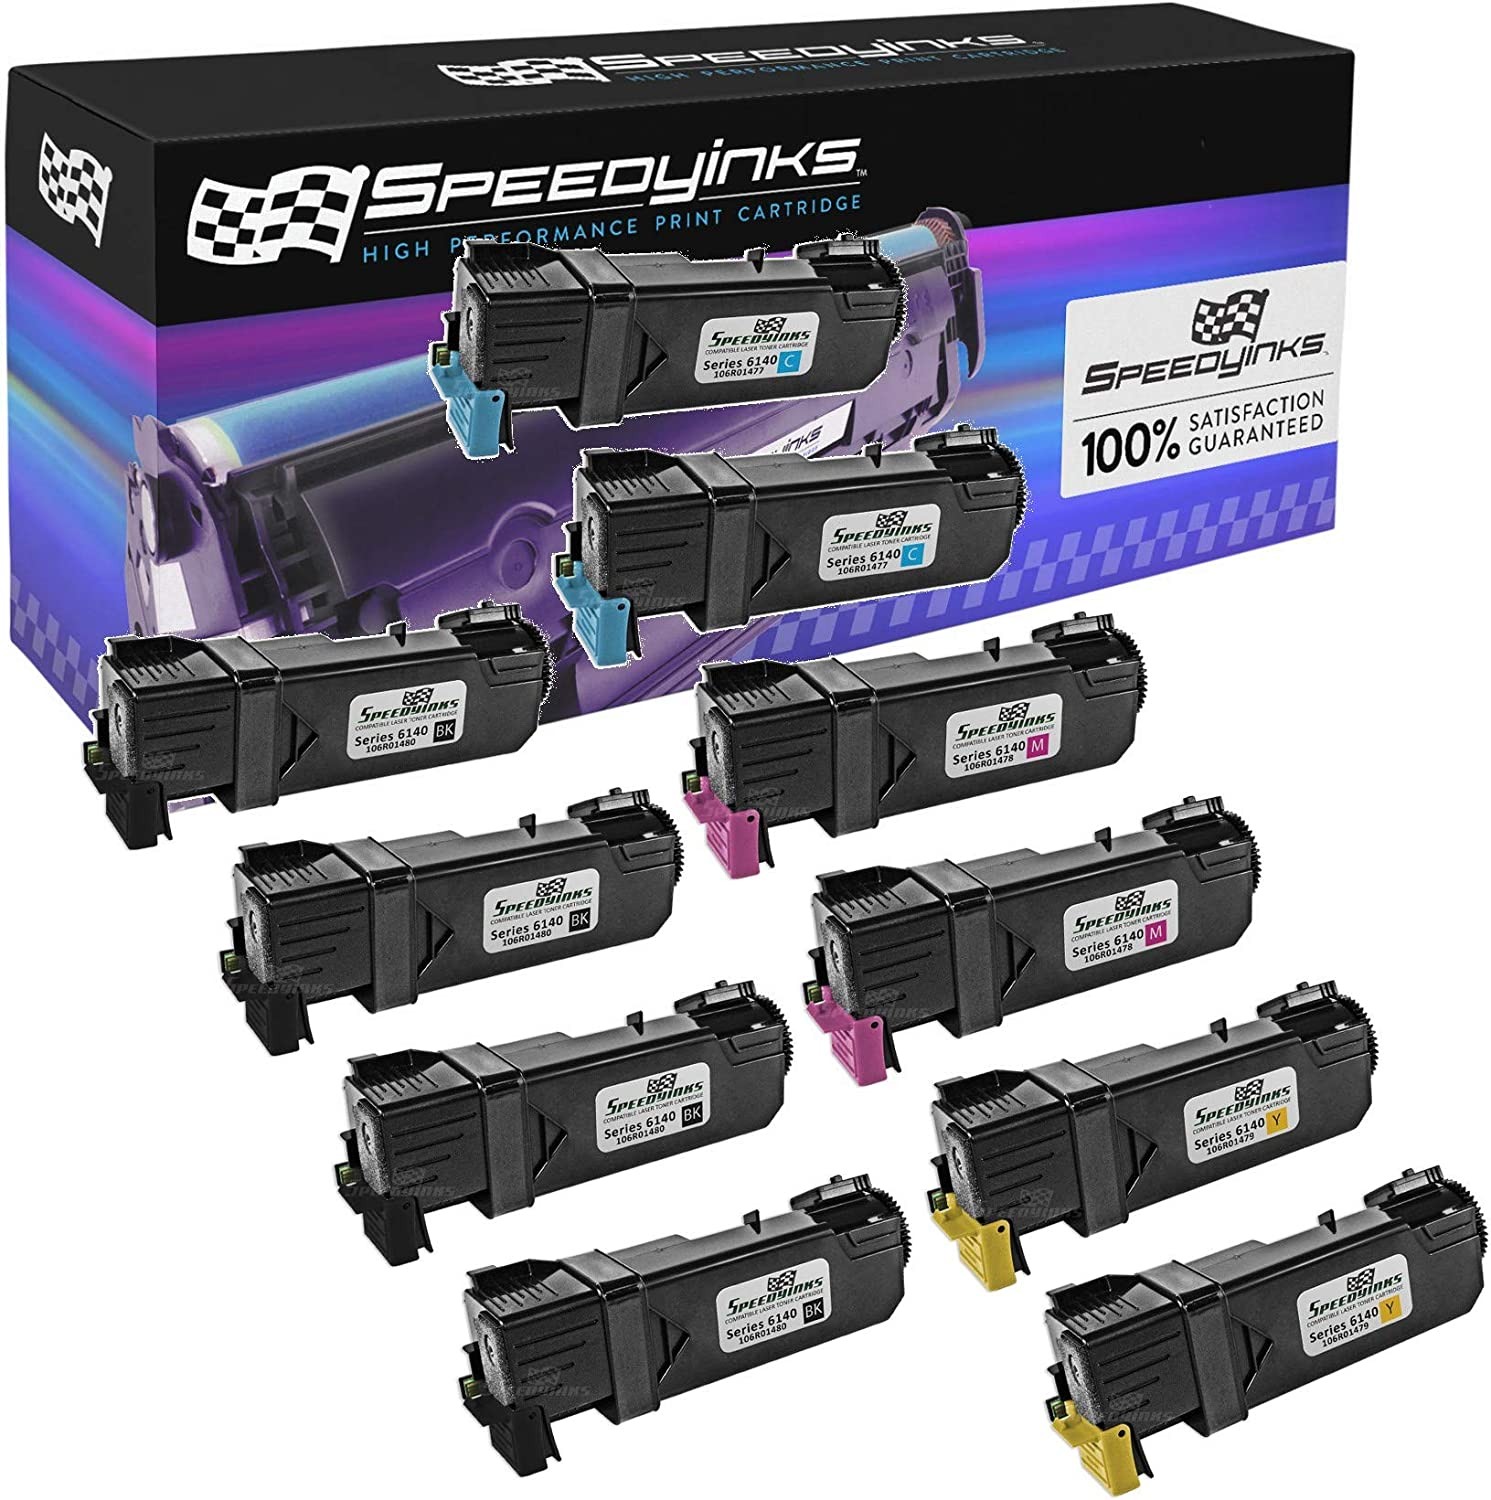 2,600 Pages Smart Print Supplies 106R1480 Black Compatible Toner Cartridge Replacement for Xerox Phaser 6140 Printers